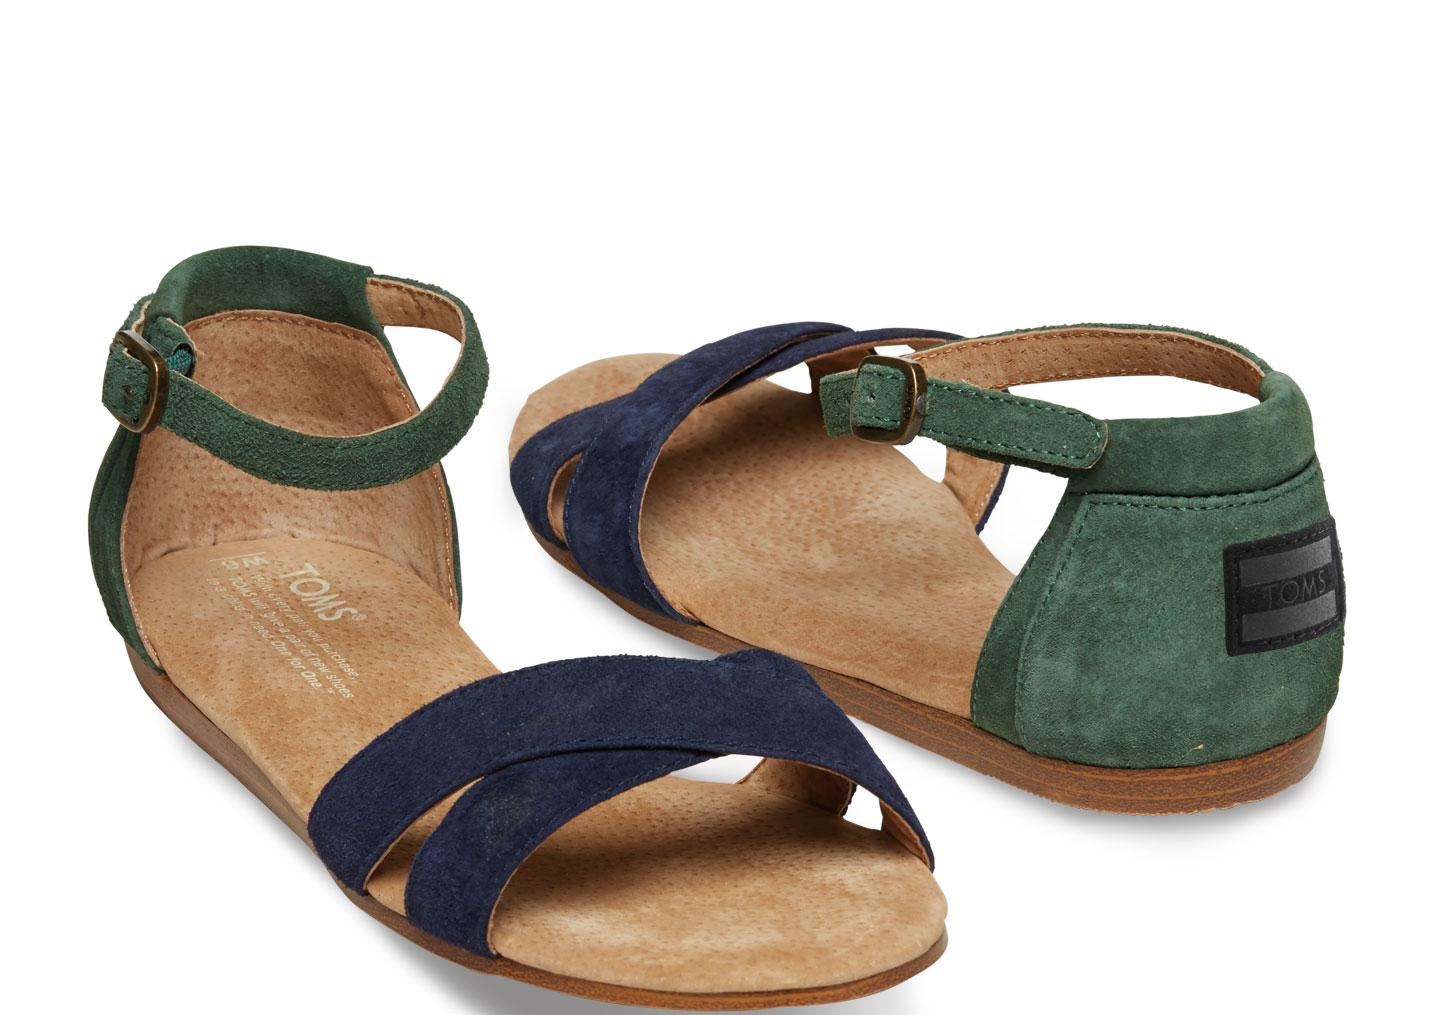 8d26bbdc89b Lyst - TOMS Suede Womens Correa Sandals in Blue